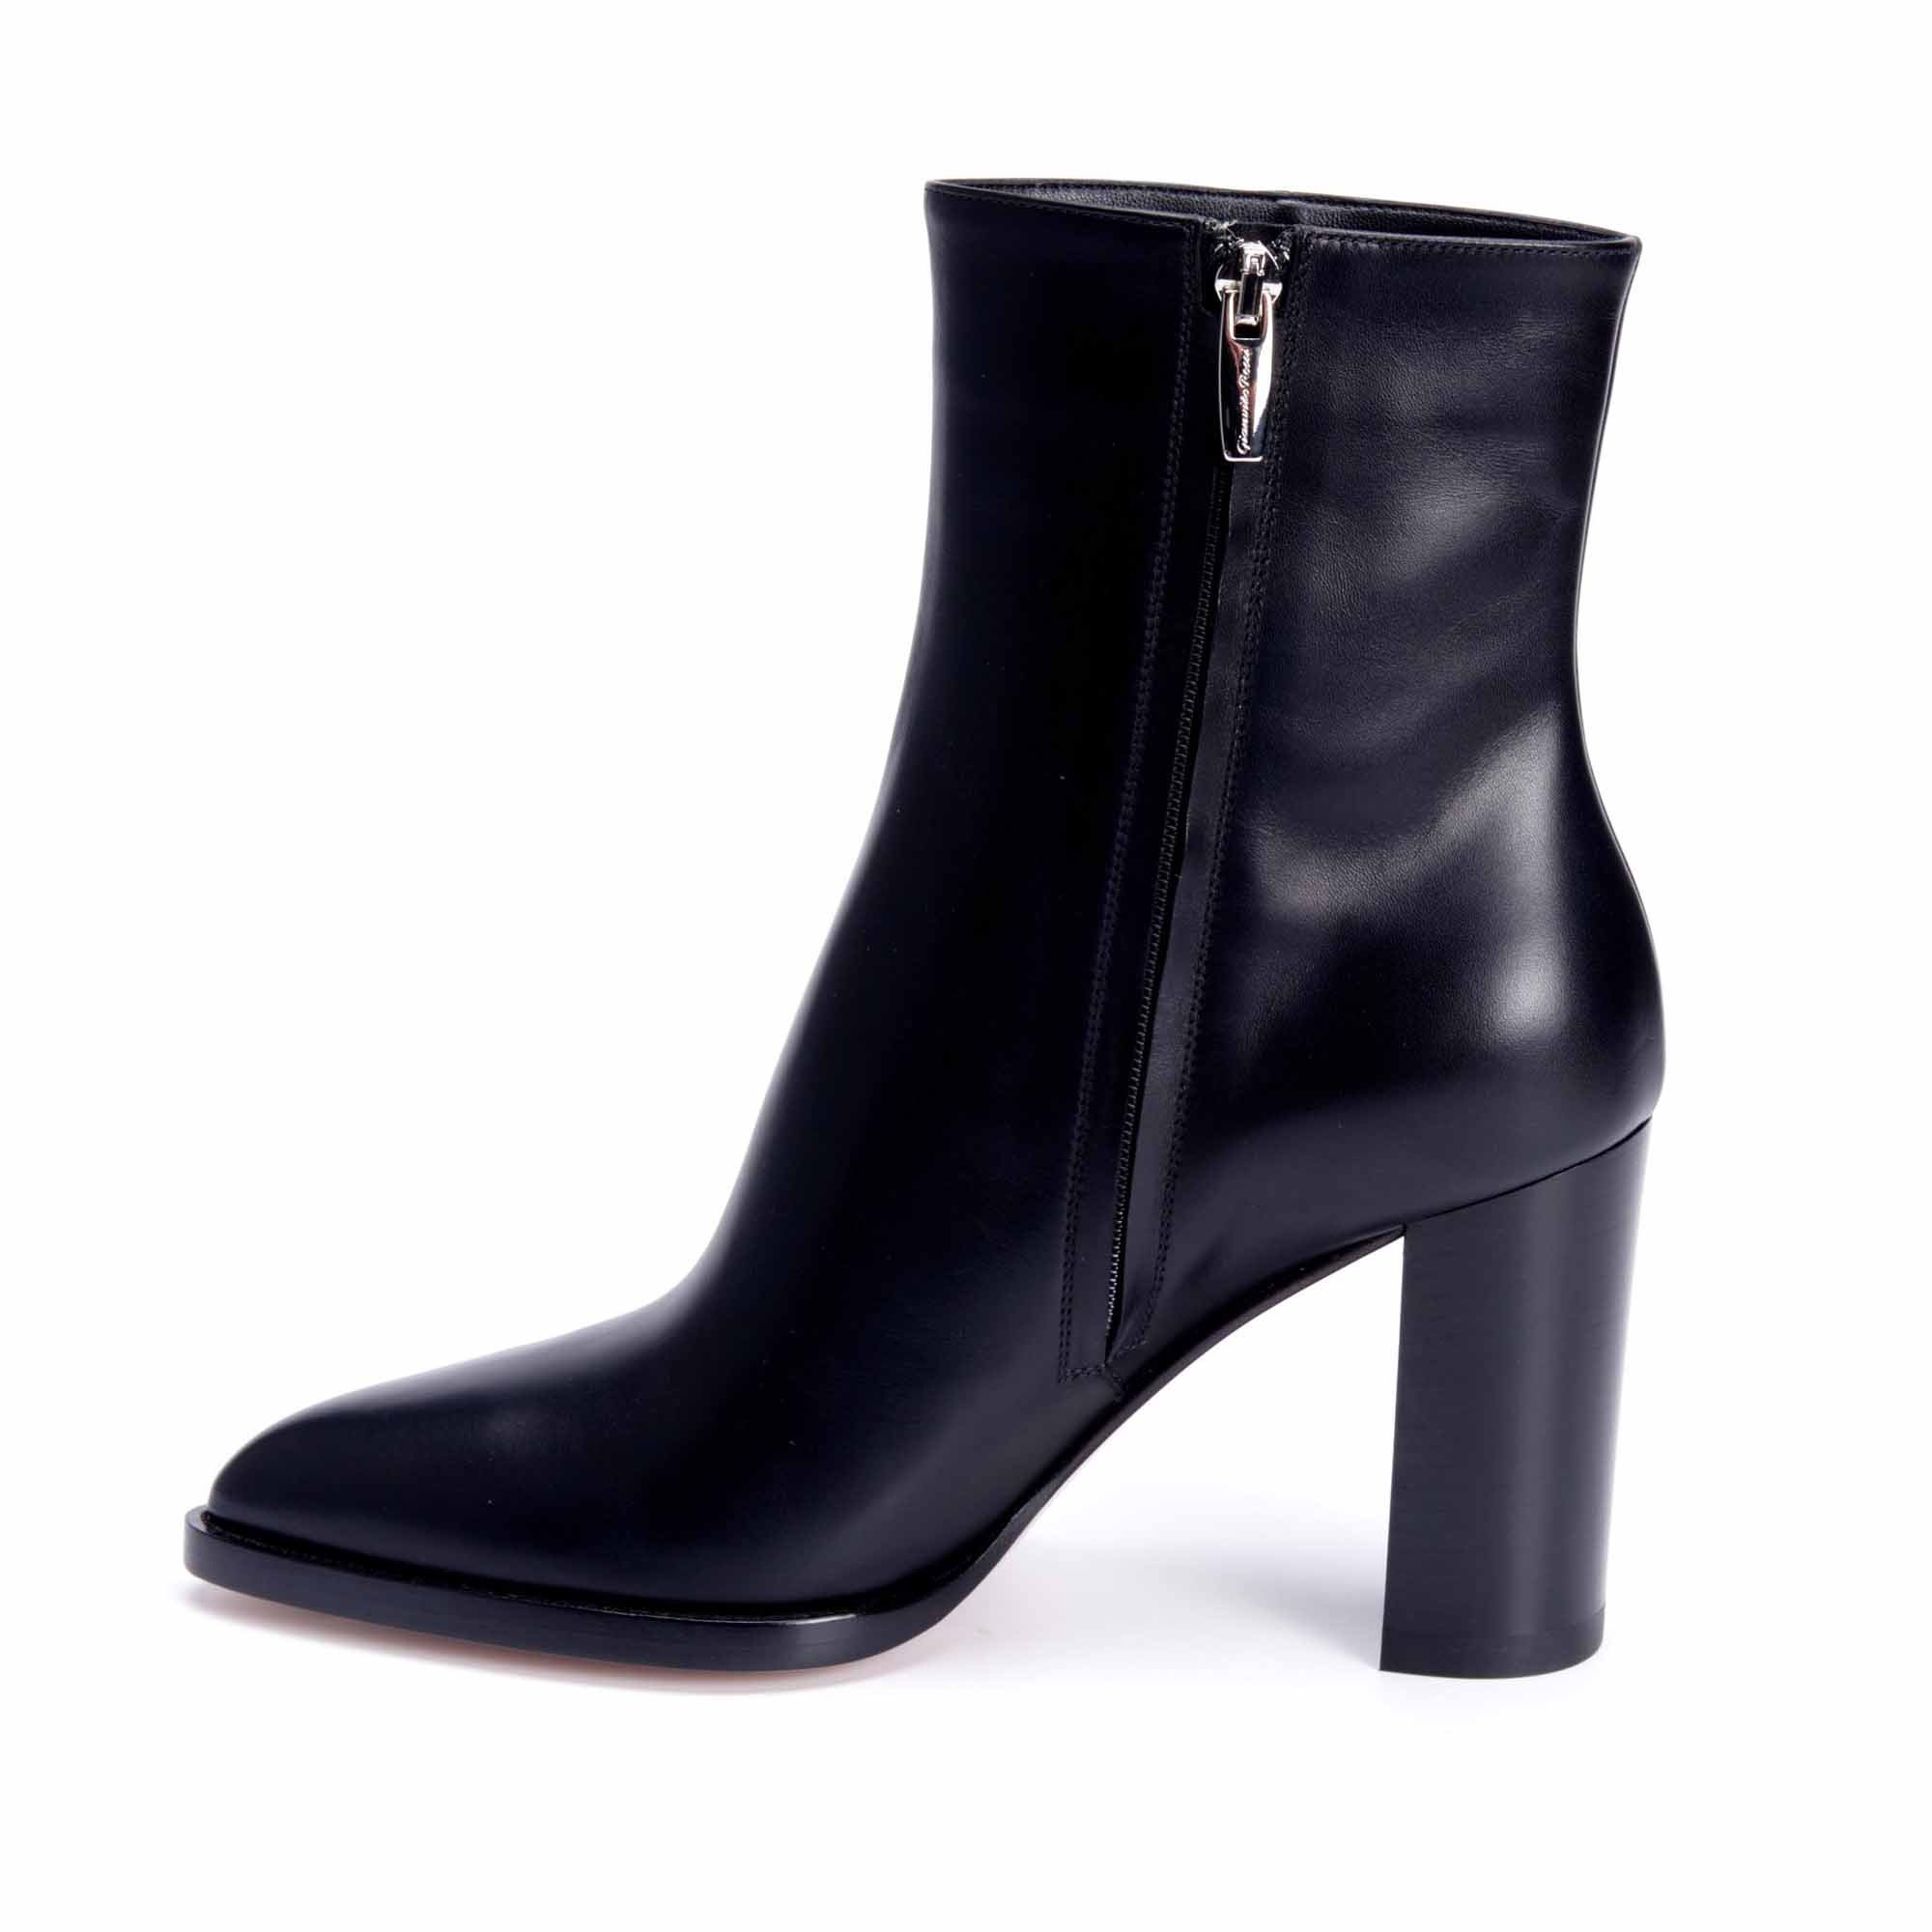 G73456 BOOTS NOIRES GIANVITO ROSSI